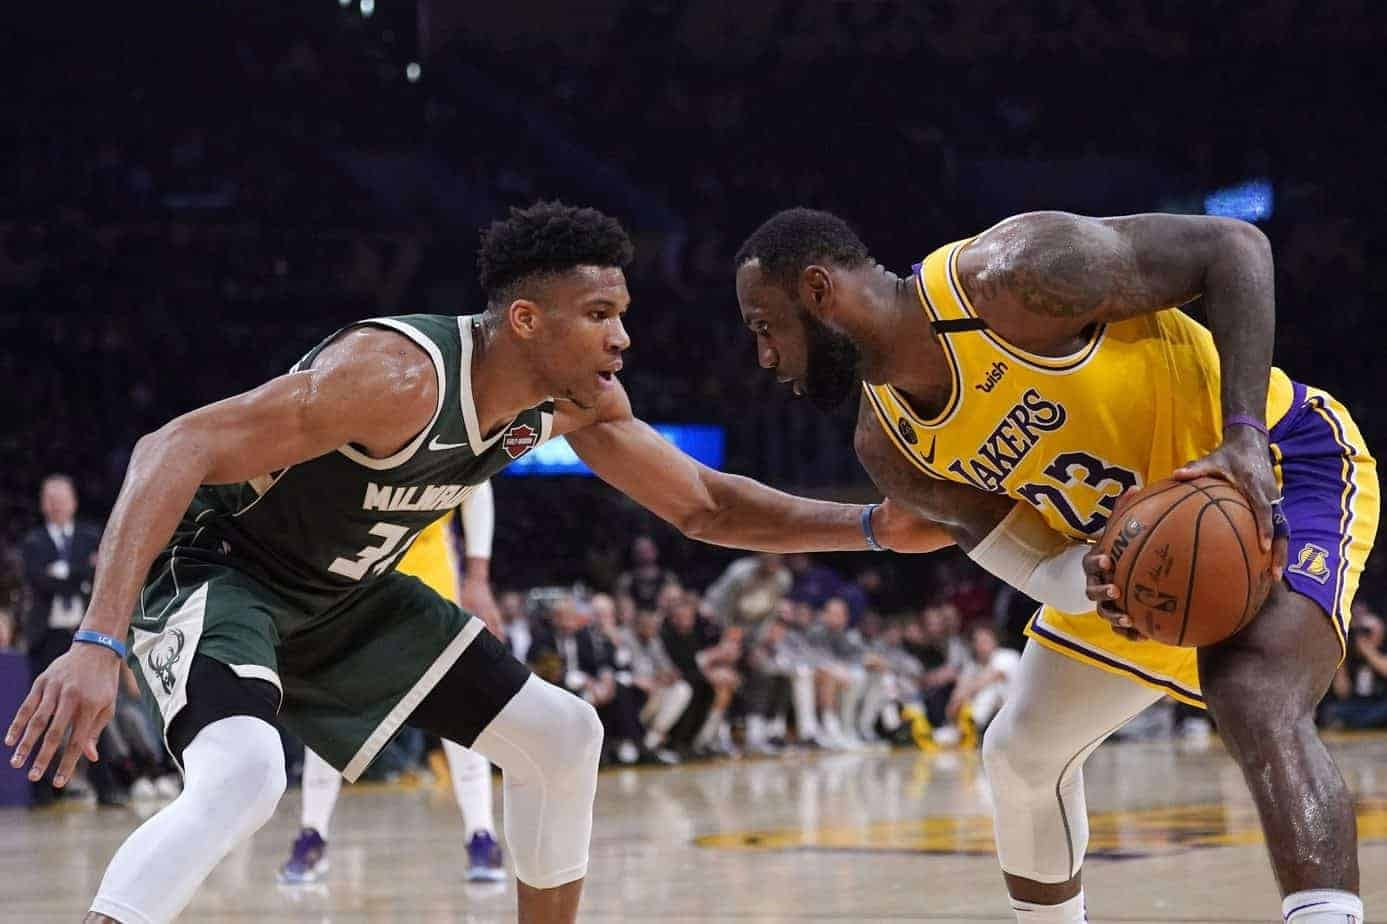 An old quote from LeBron James where he backs up the notion that Giannis Antetokounmpo 'can't score' is coming back to haunt him now